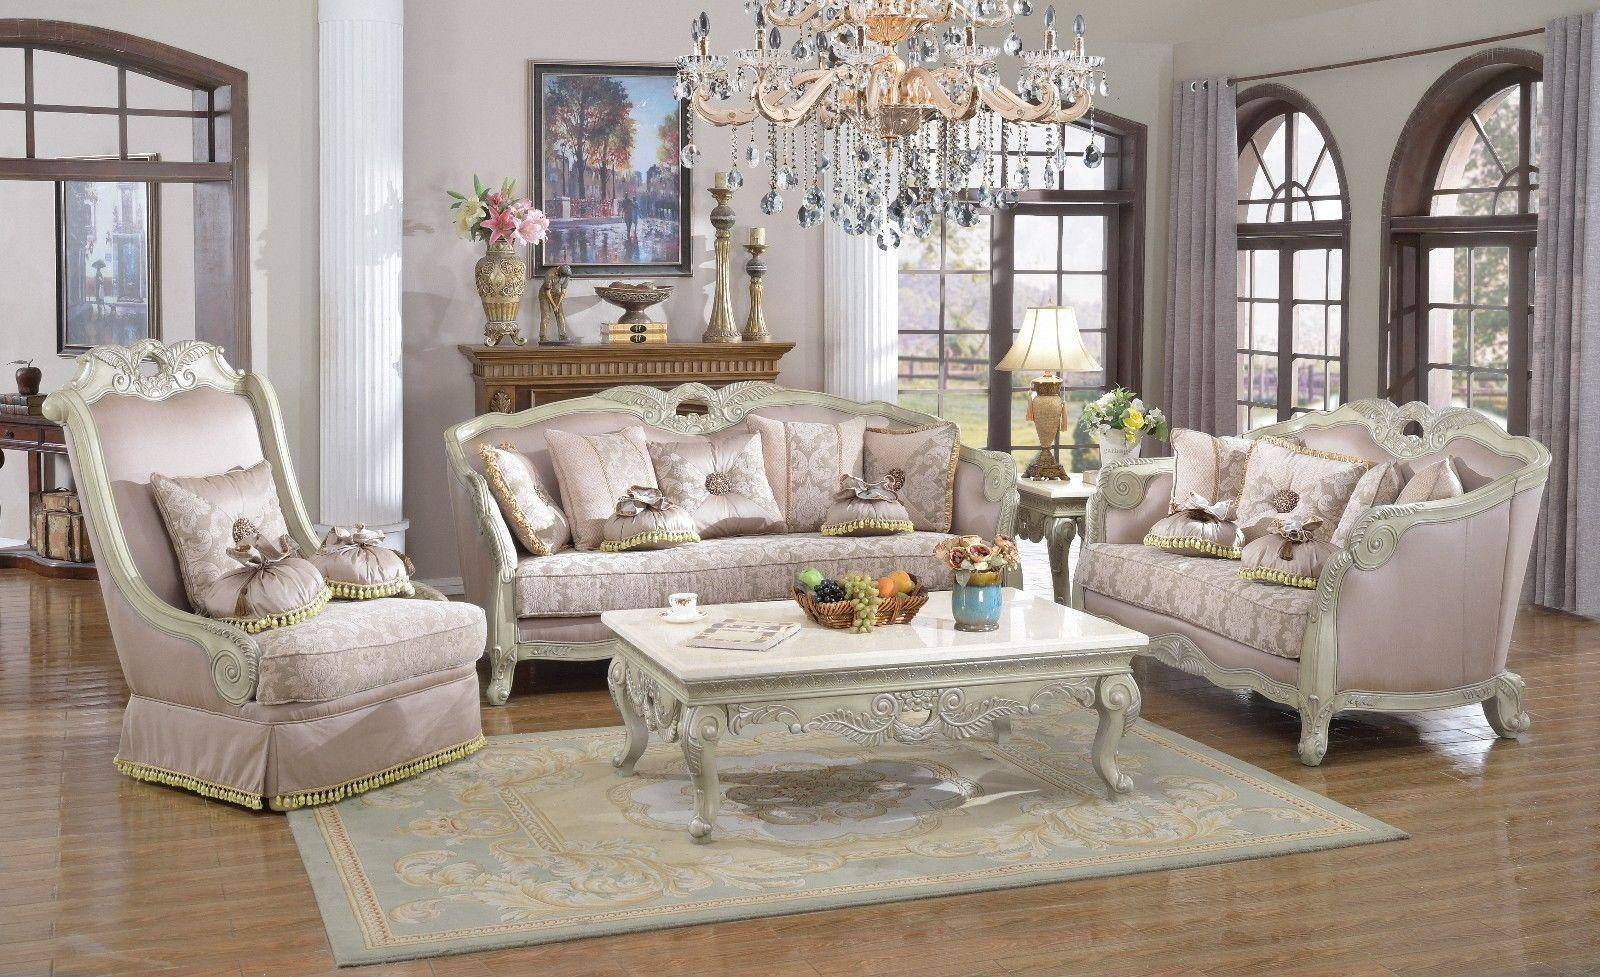 Meridian 621 Positano Living Room Set 3pcs in Antique White ...